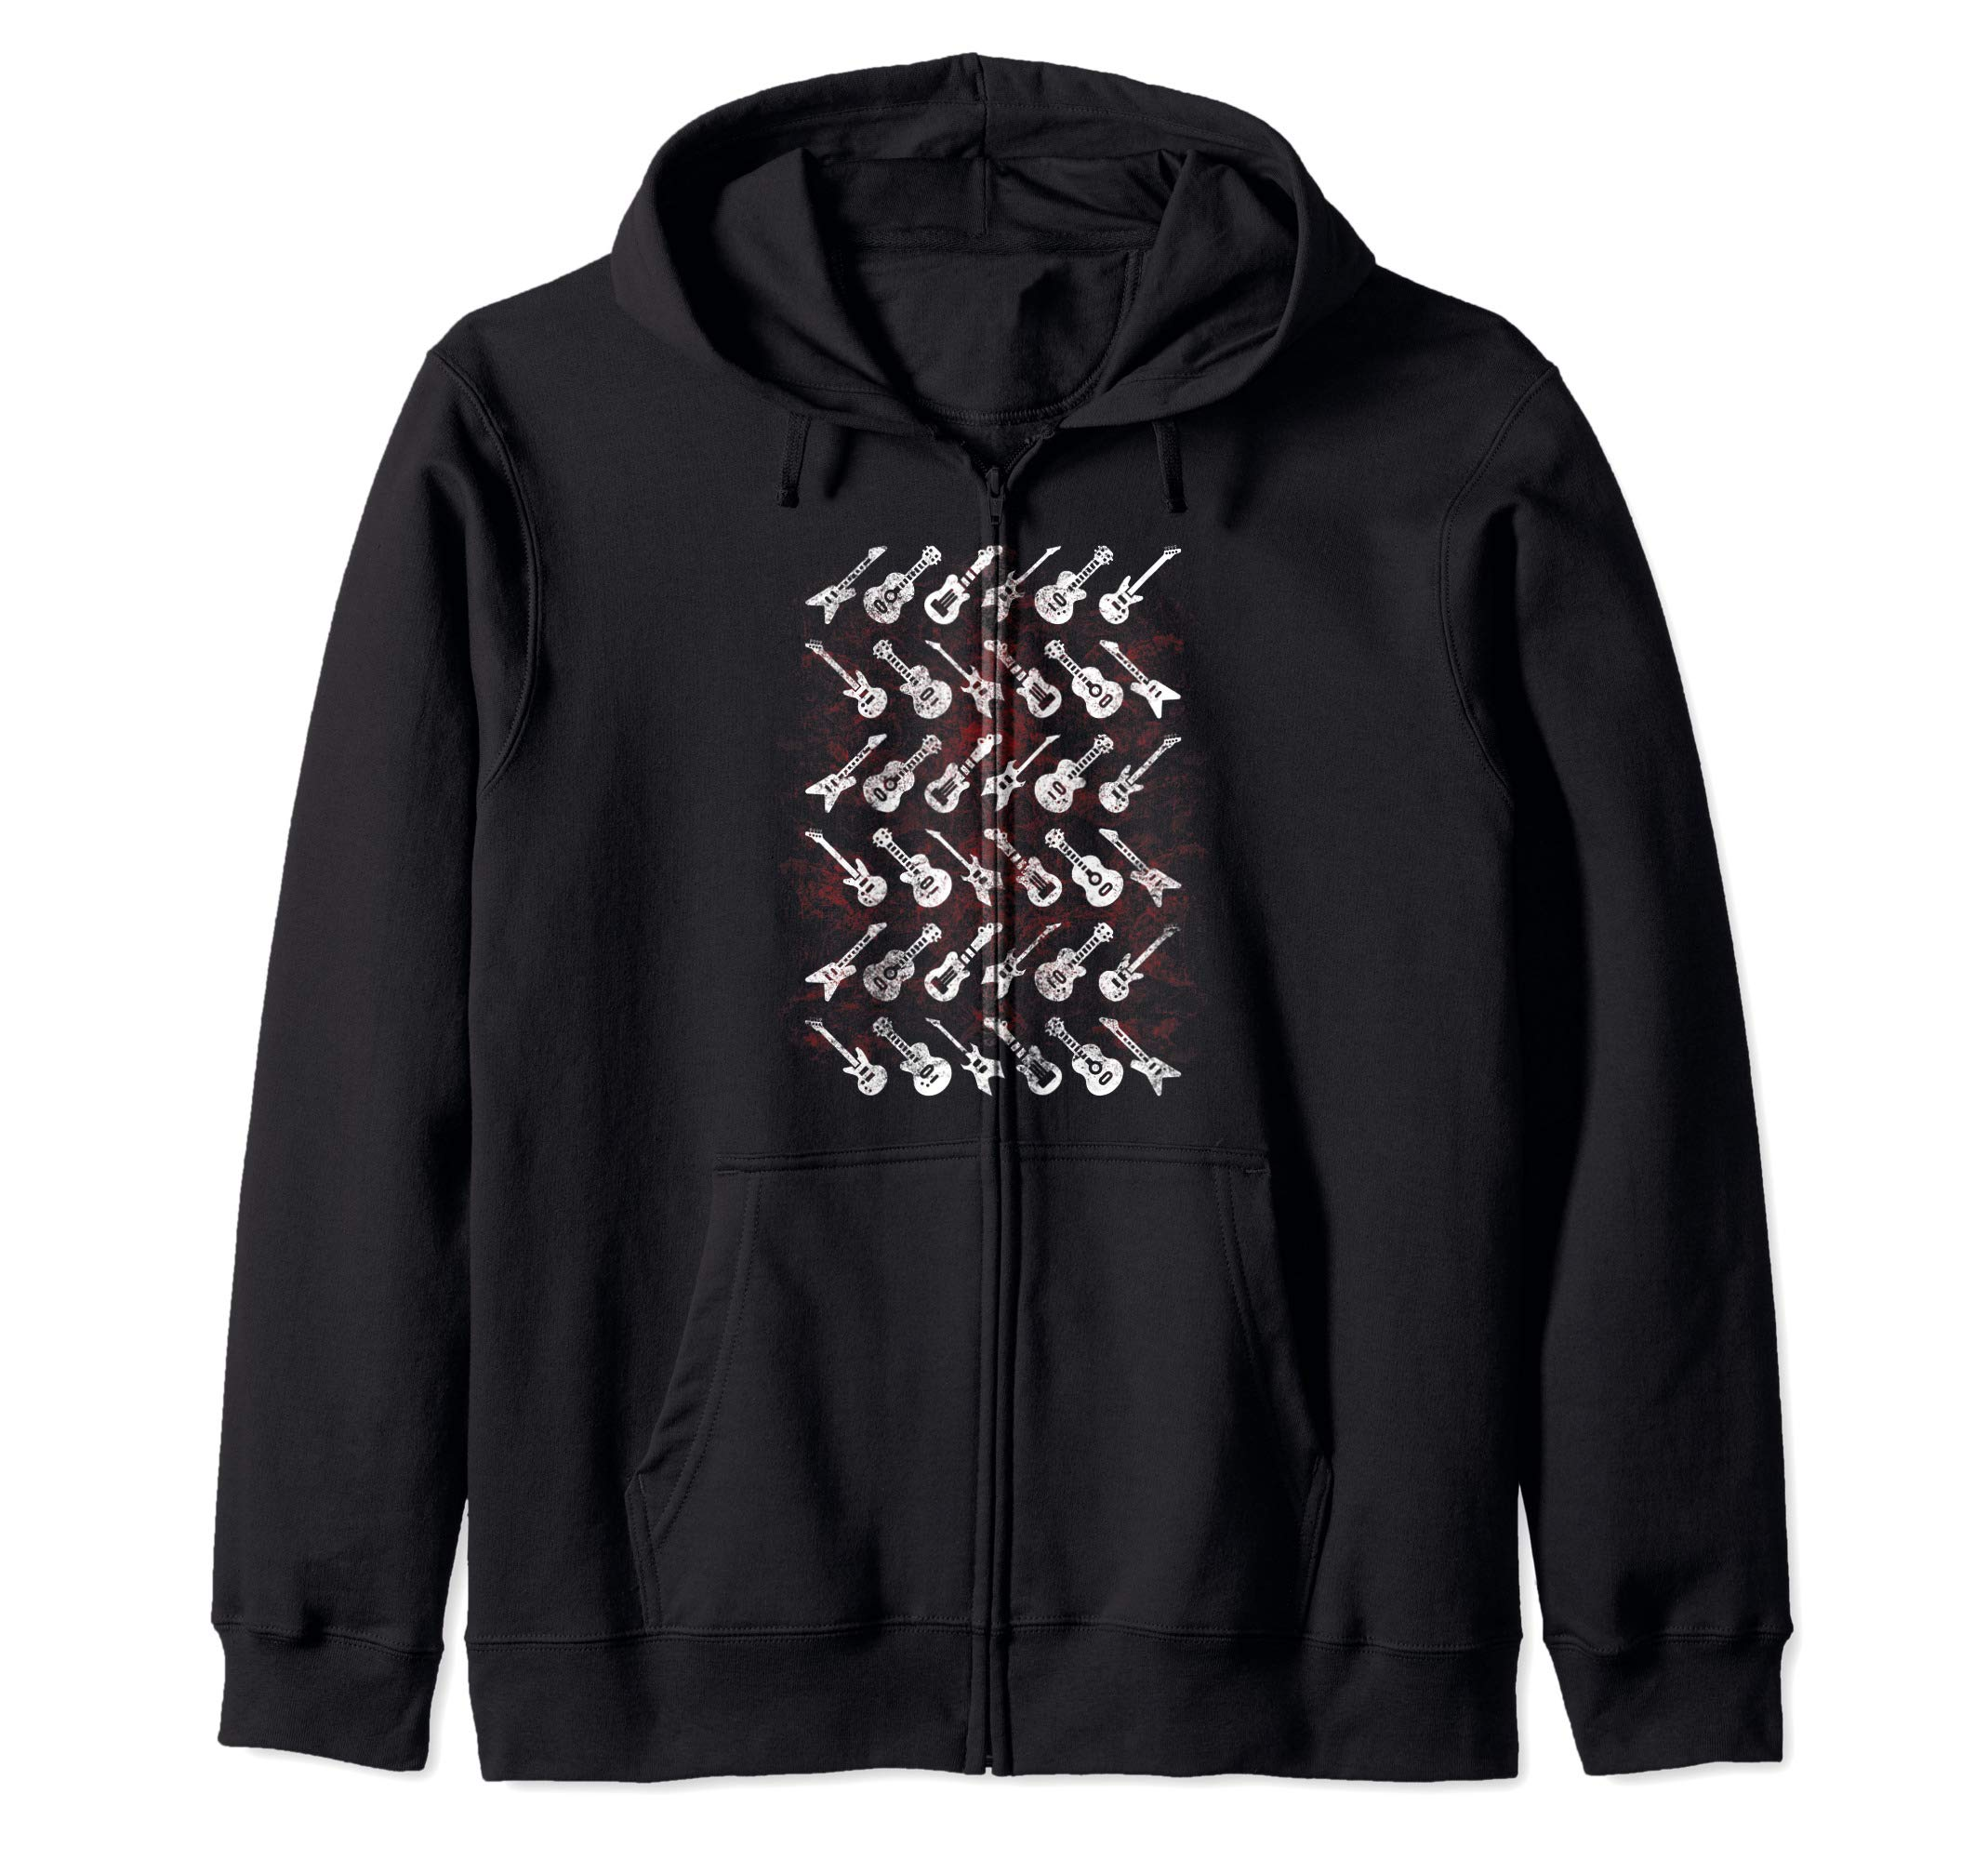 Guitars Types Bass Classic Star Acoustic Rock Gift Zip Hoodie by UAB KIDKIS